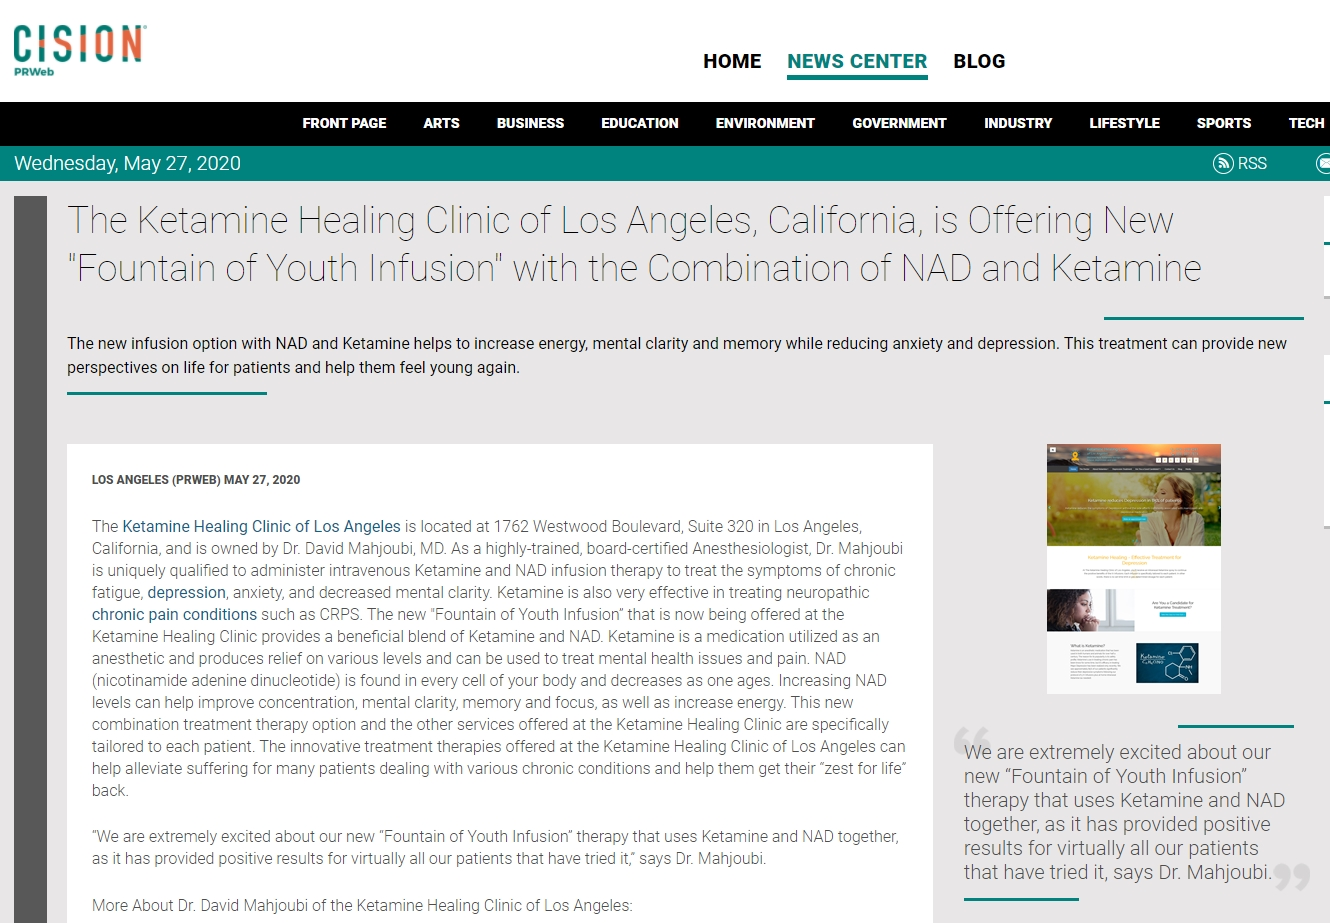 Screenshot of an article - The Ketamine Healing Clinic of Los Angeles, California, is Offering New Fountain of Youth Infusion with the Combination of NAD and Ketamine